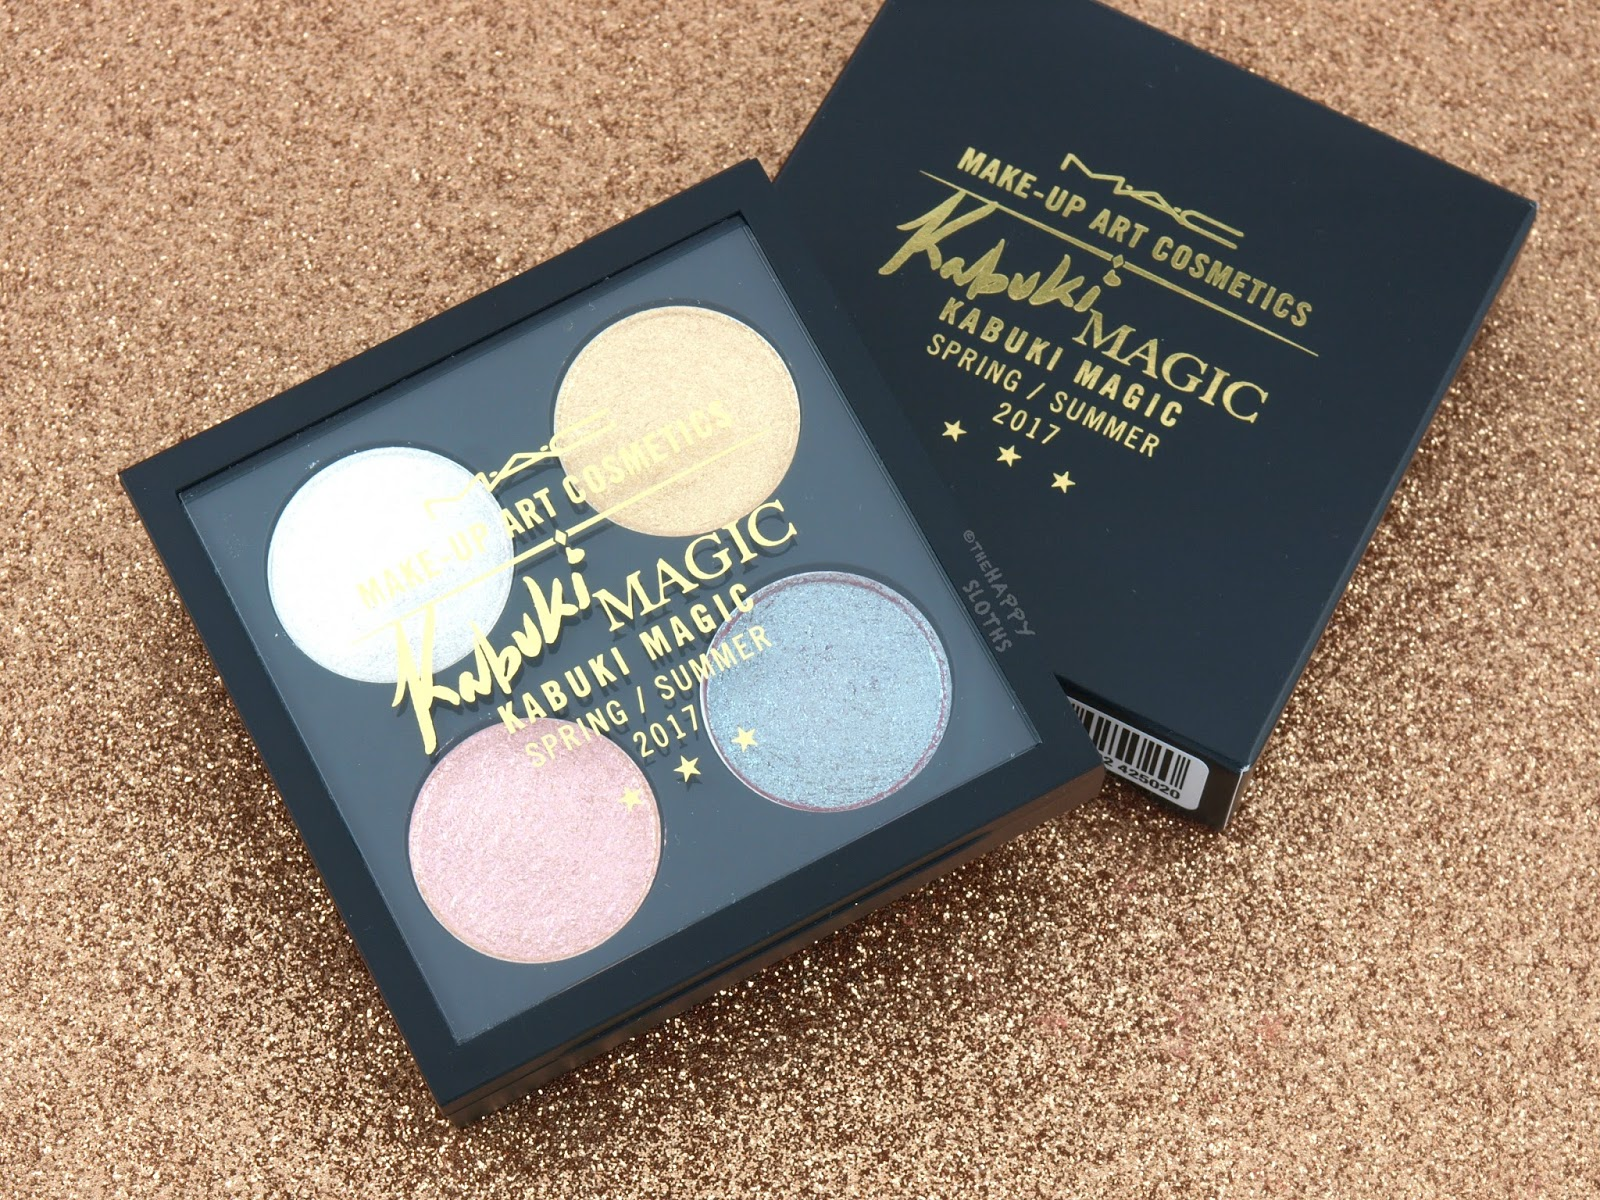 MAC Make-up Art Cosmetics Collection | Kabuki Magic Dazzleshadow X 4 Palette: Review and Swatches